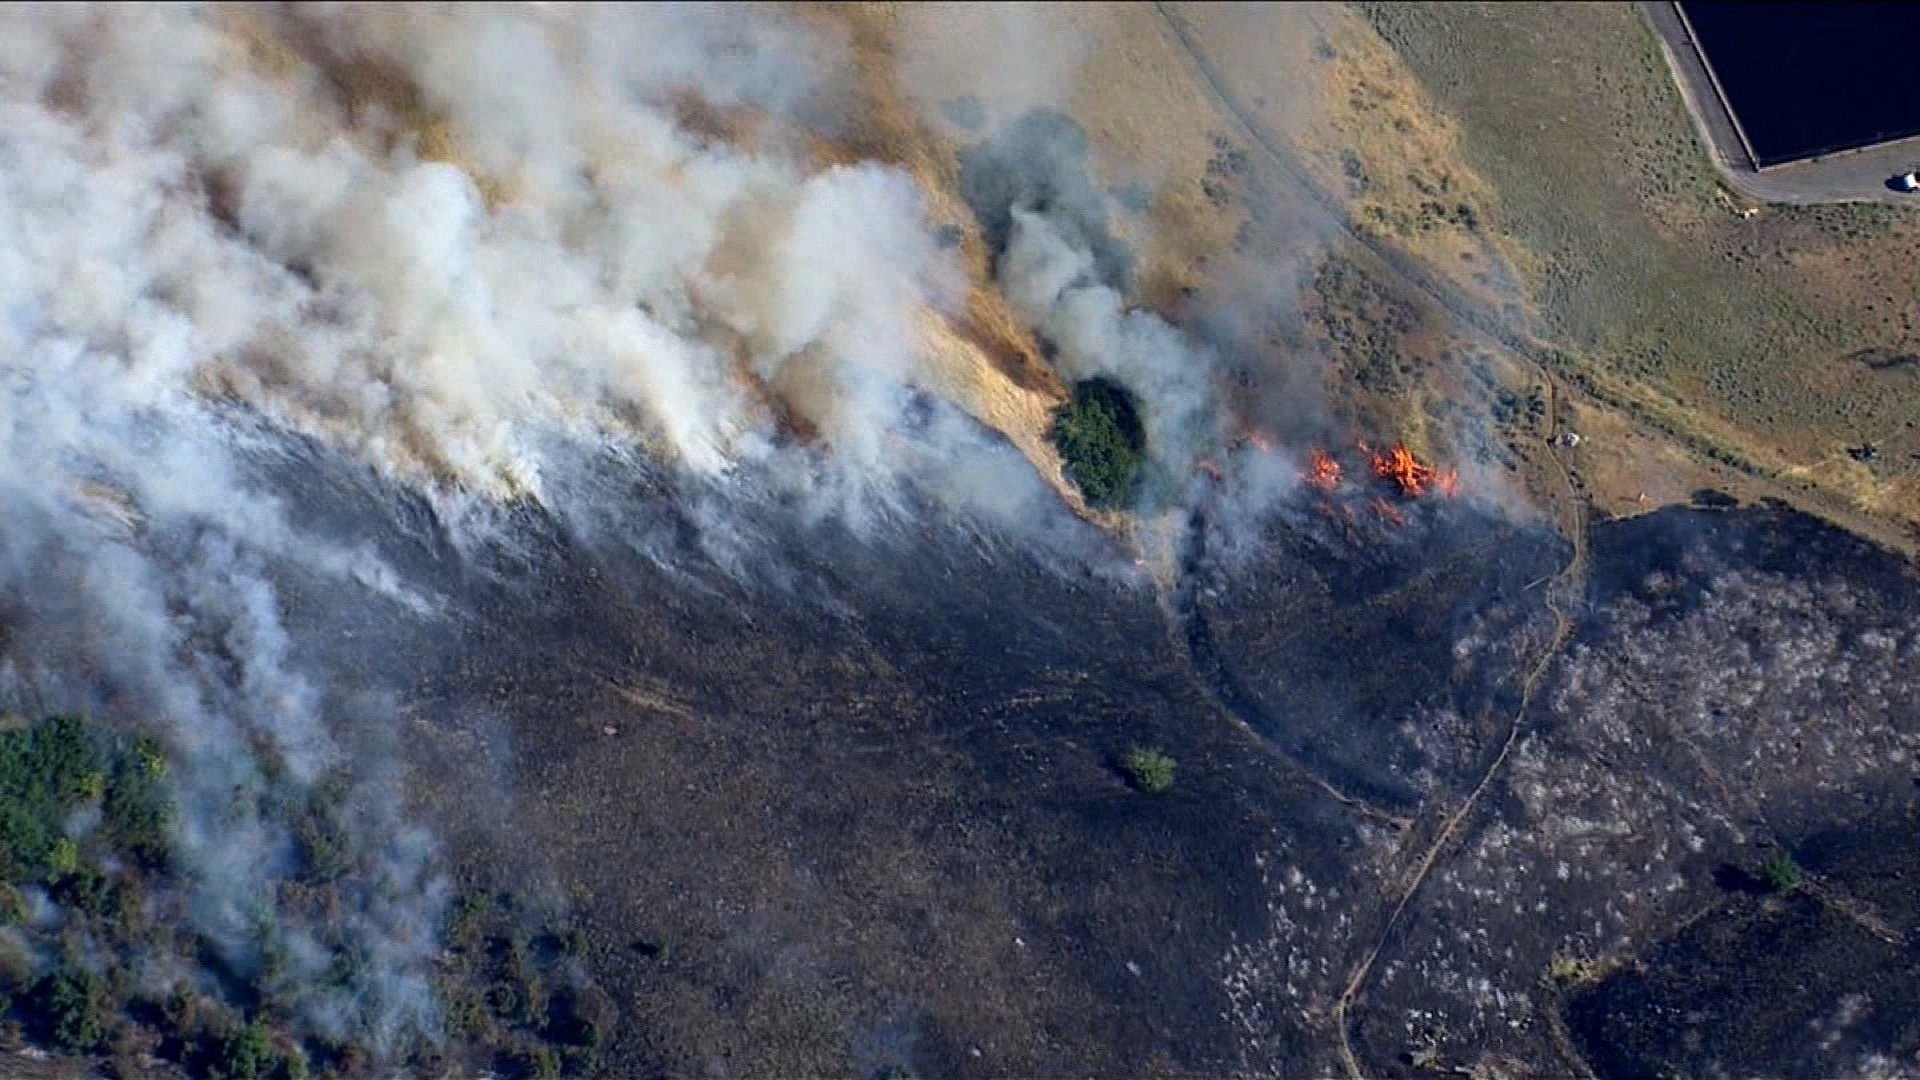 In Utah, fires continued with little rain relief in sight. Ten communities have been evacuated, officials said. (Credit: KSL)